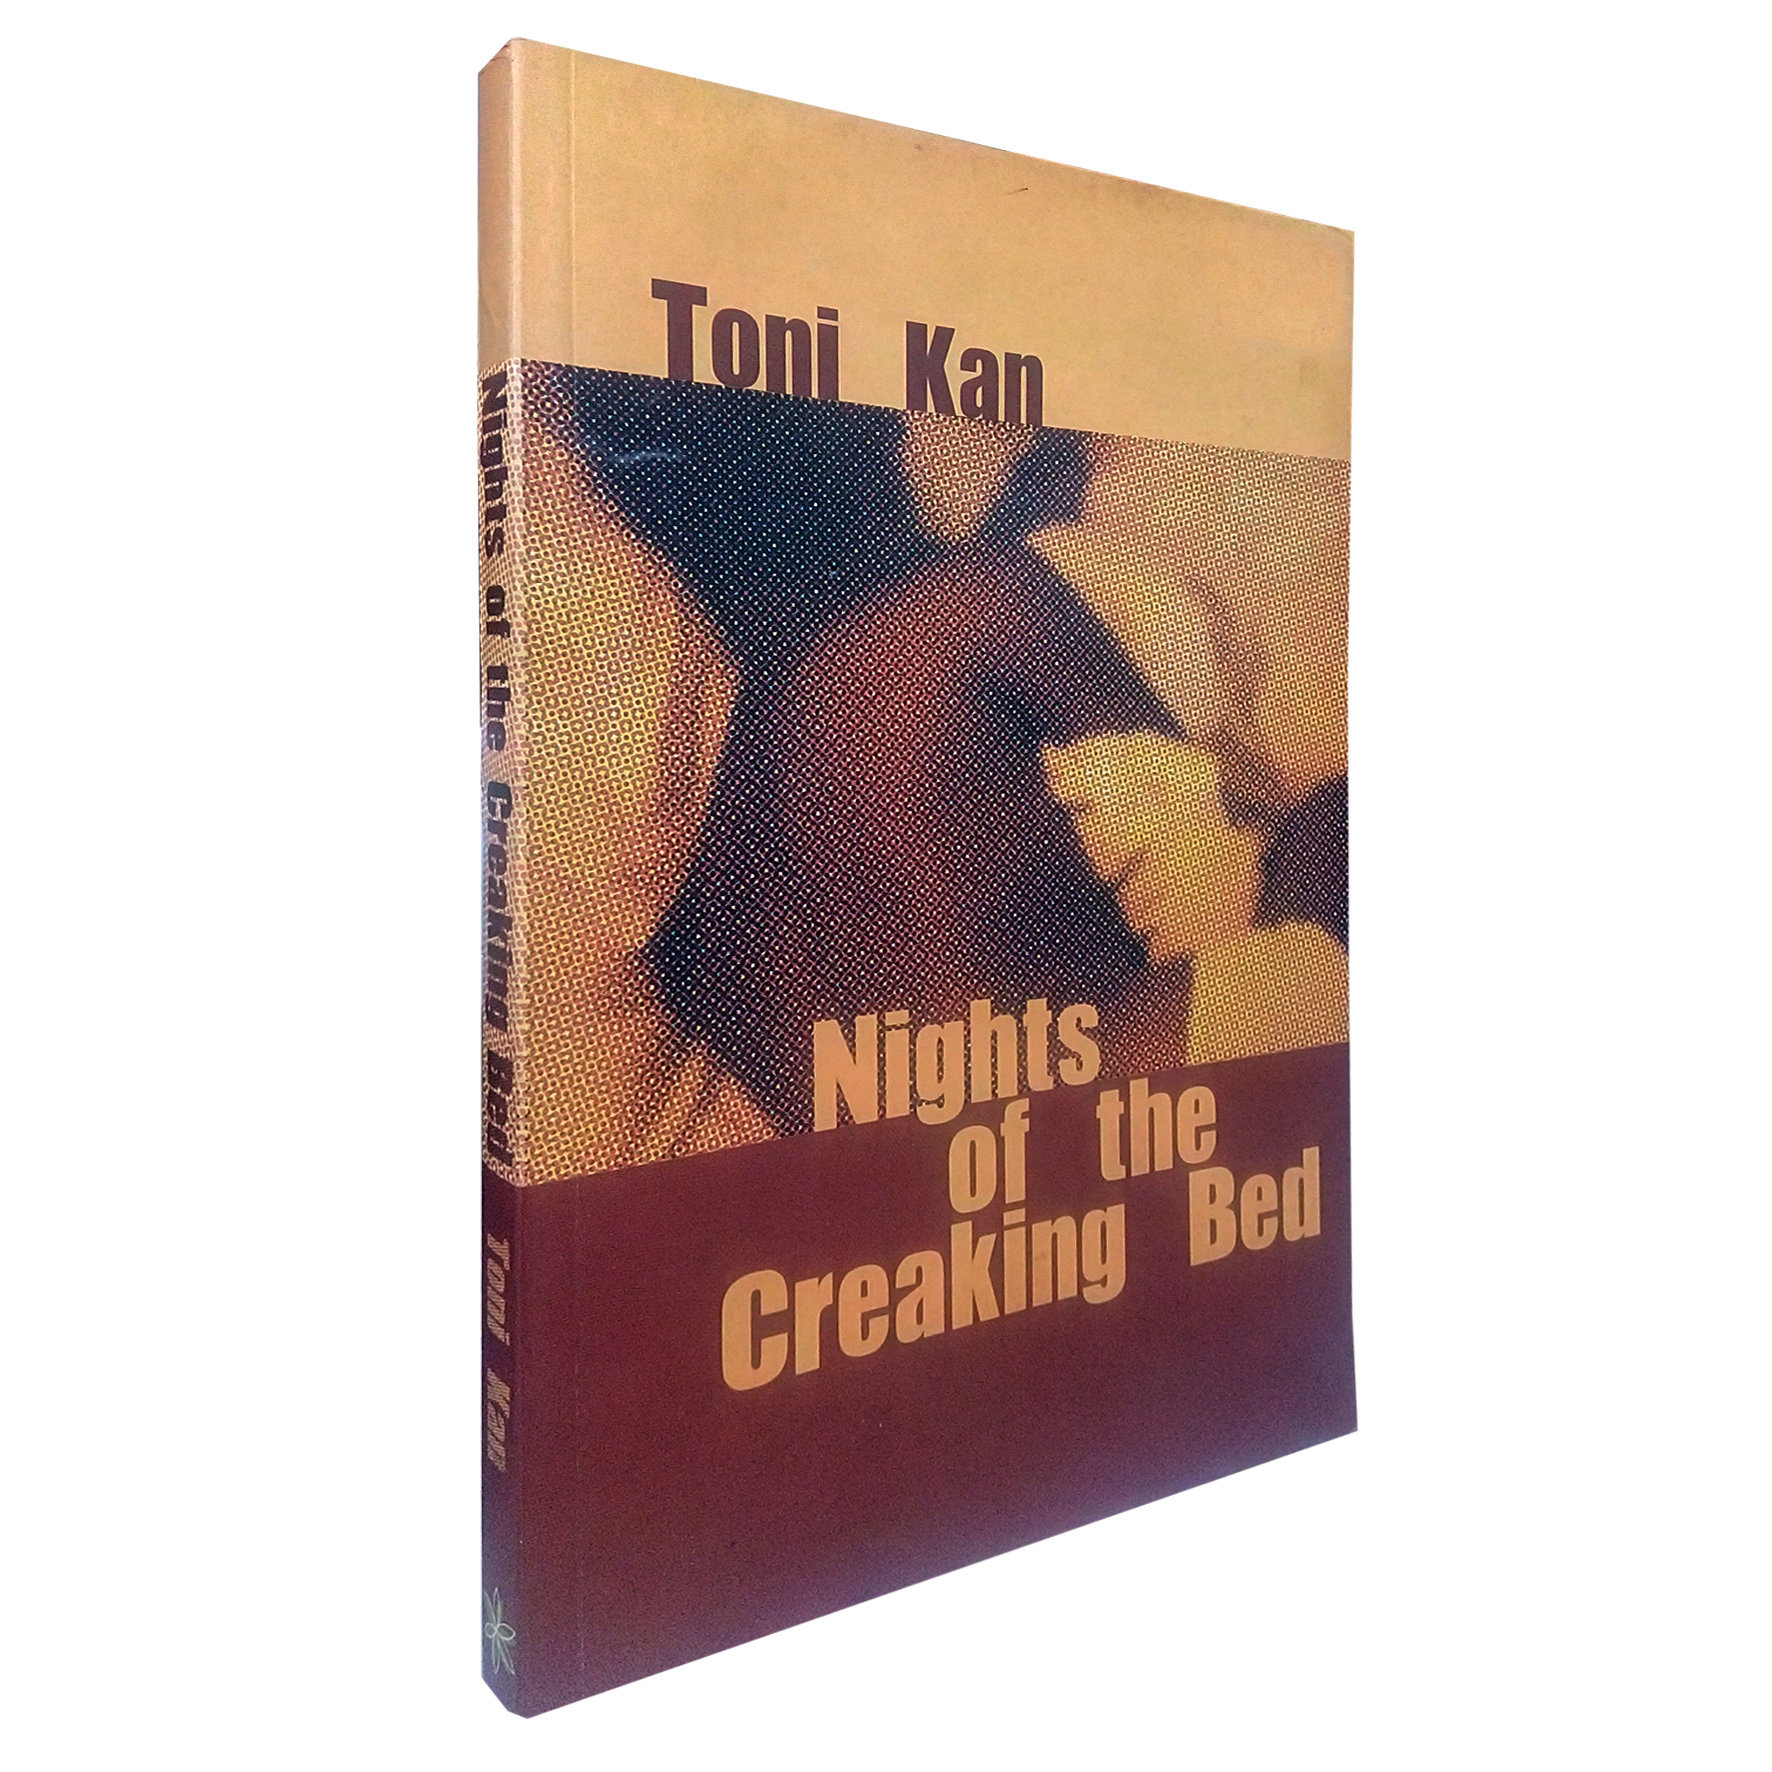 Nights of the Creaking Bed by Toni Kan (Cassava Republic Press, 2008) CIR14